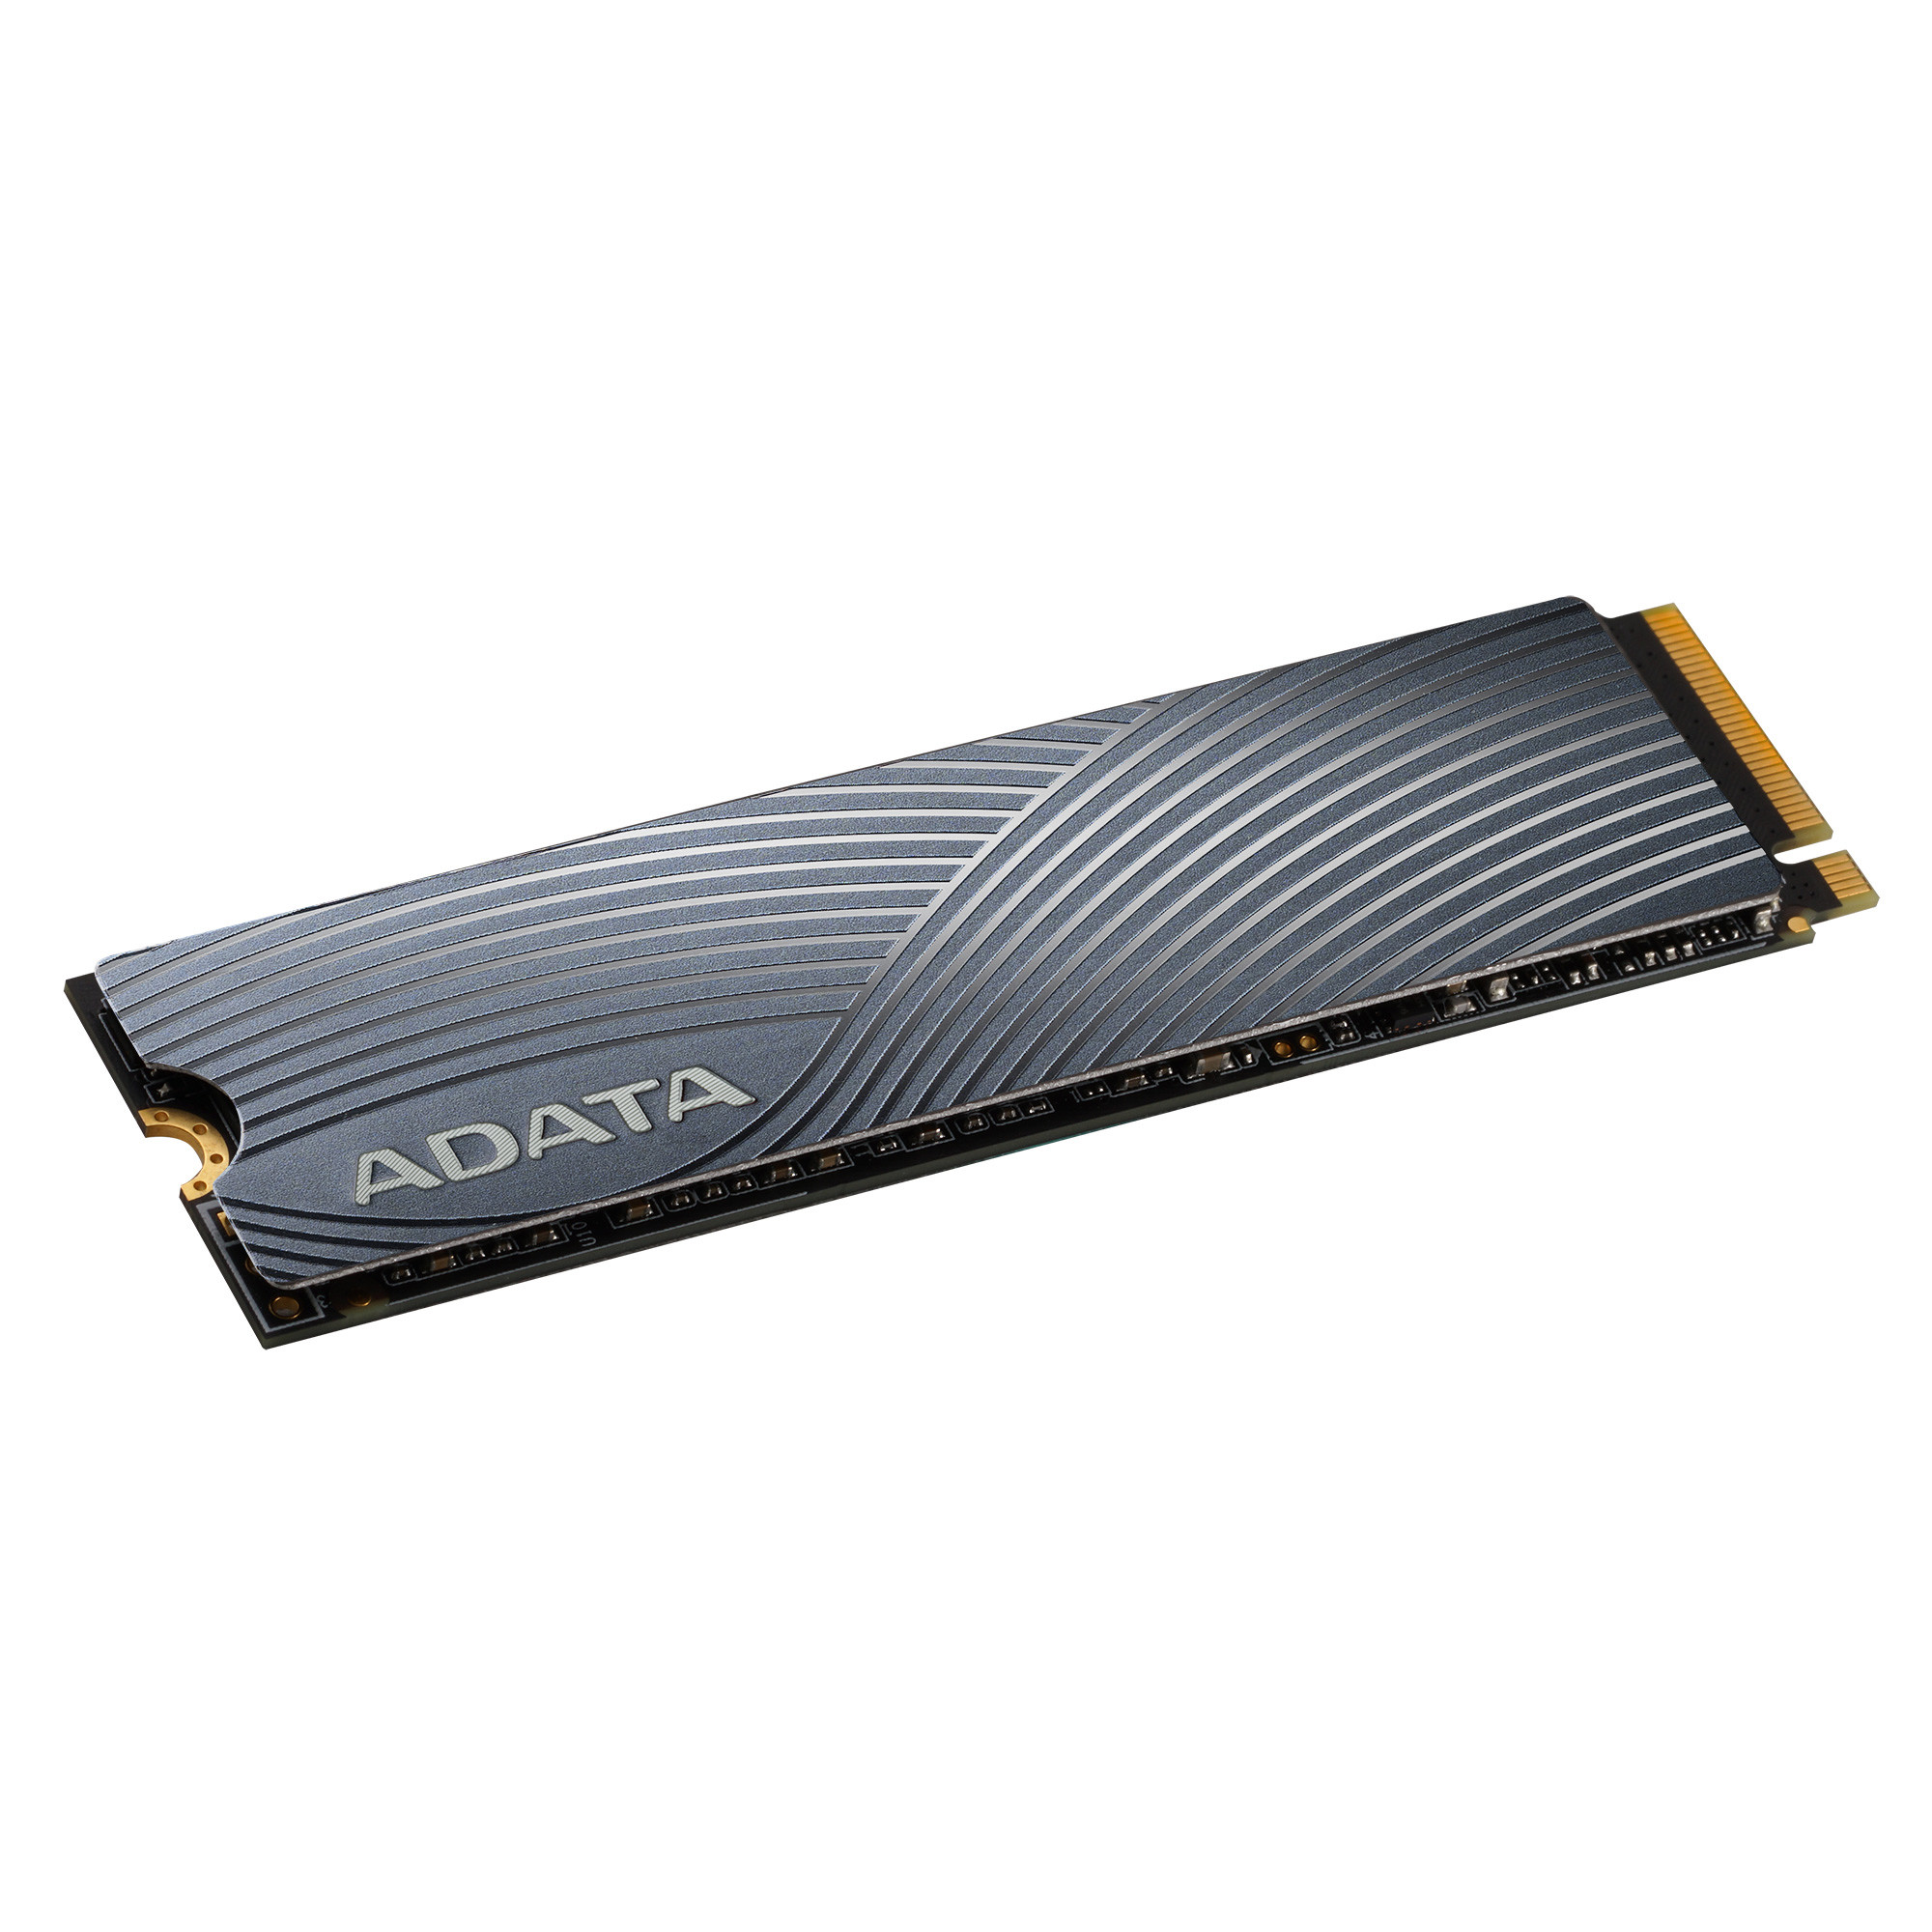 ADATA SSD SWORDFISH 500G M2 PC